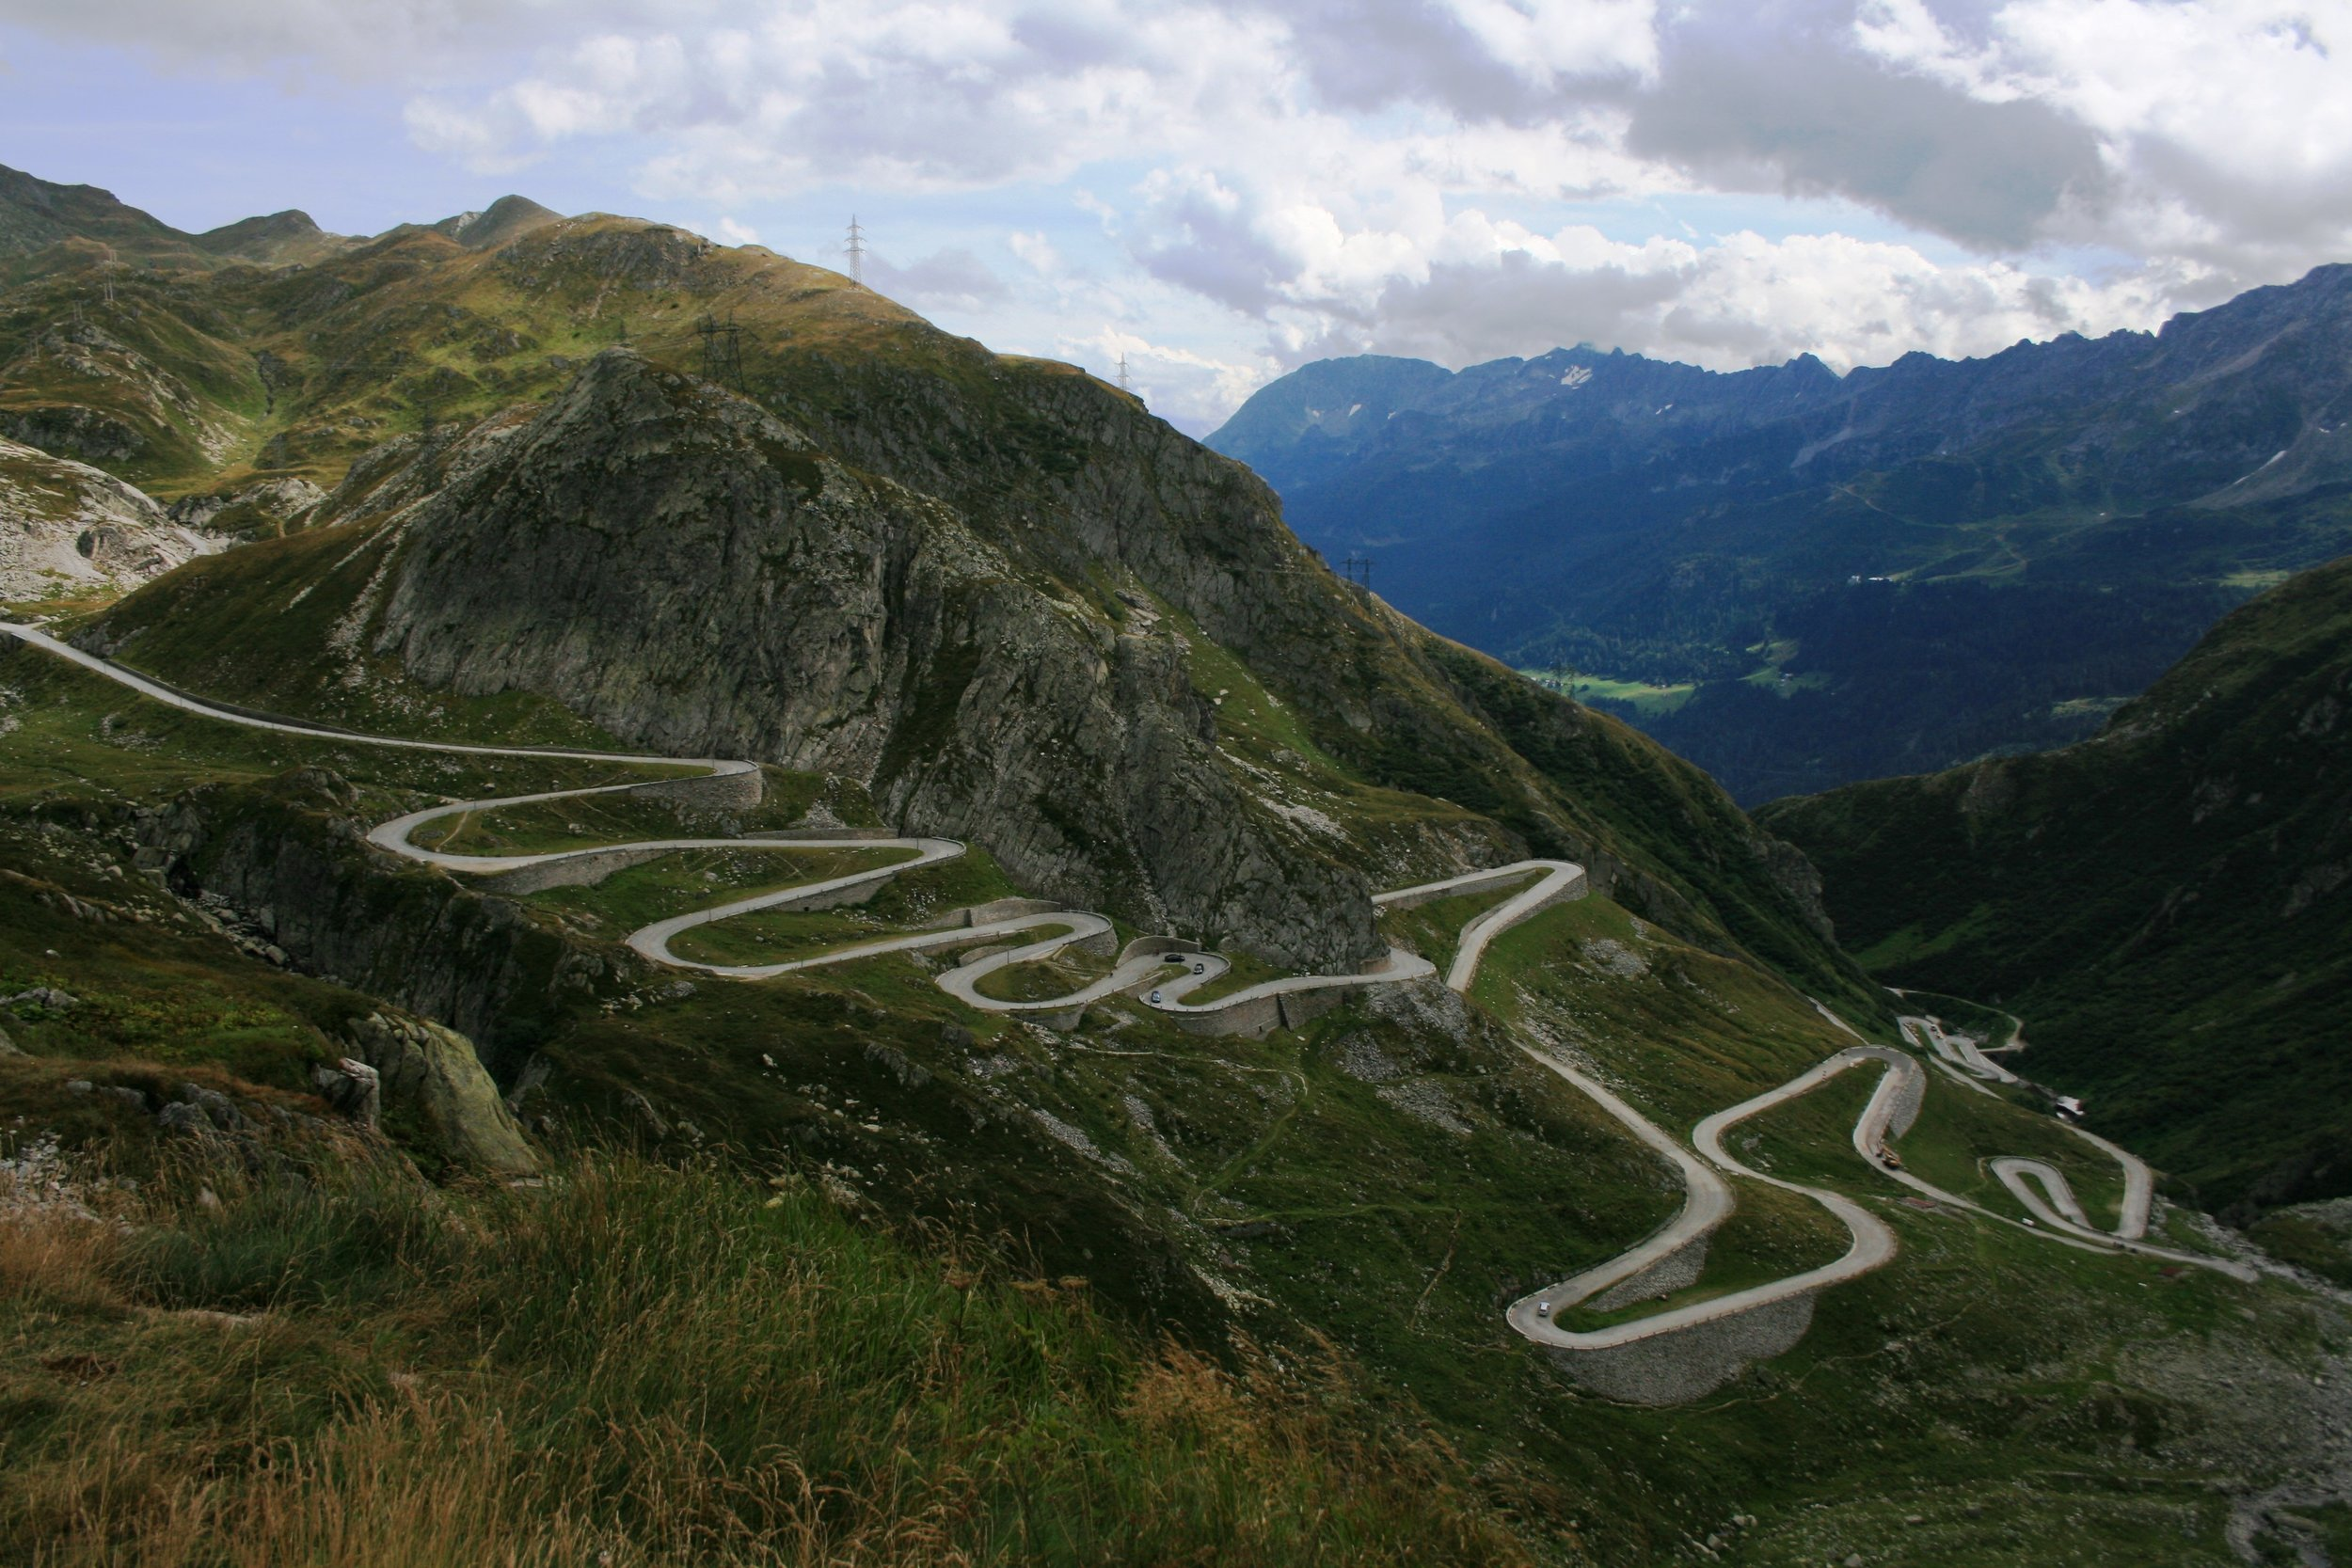 Your career path will not be a straight line. Be proactive and pace yourself so you can handle all the ups, downs and curves. Image: Dory Wilson, Your Office Mom in Switzerland